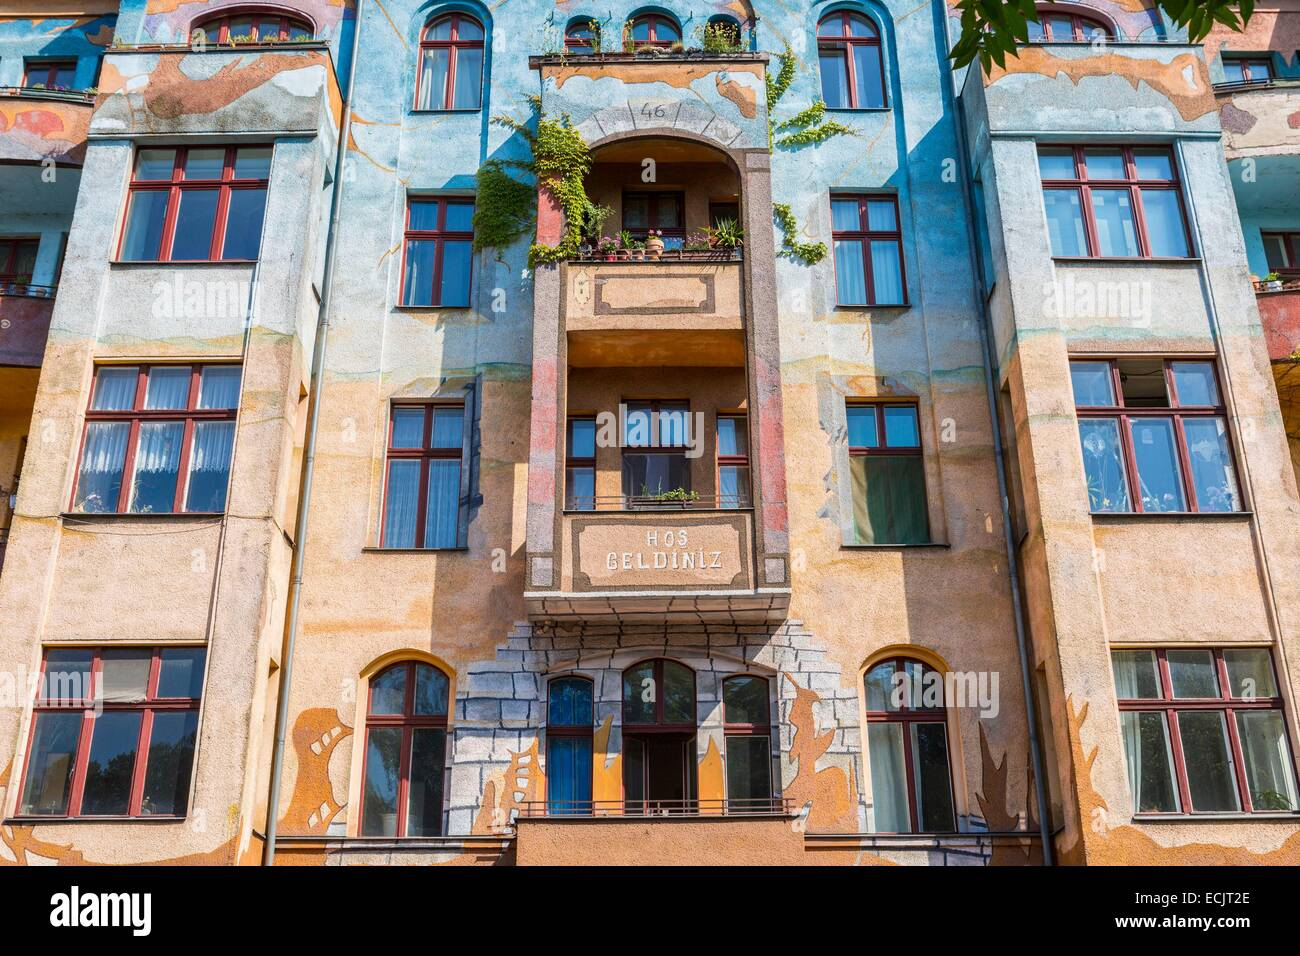 Germany, Berlin, East Berlin district of Kreuzberg, Tag painted facade of a building in Falckensteinstrasse - Stock Image